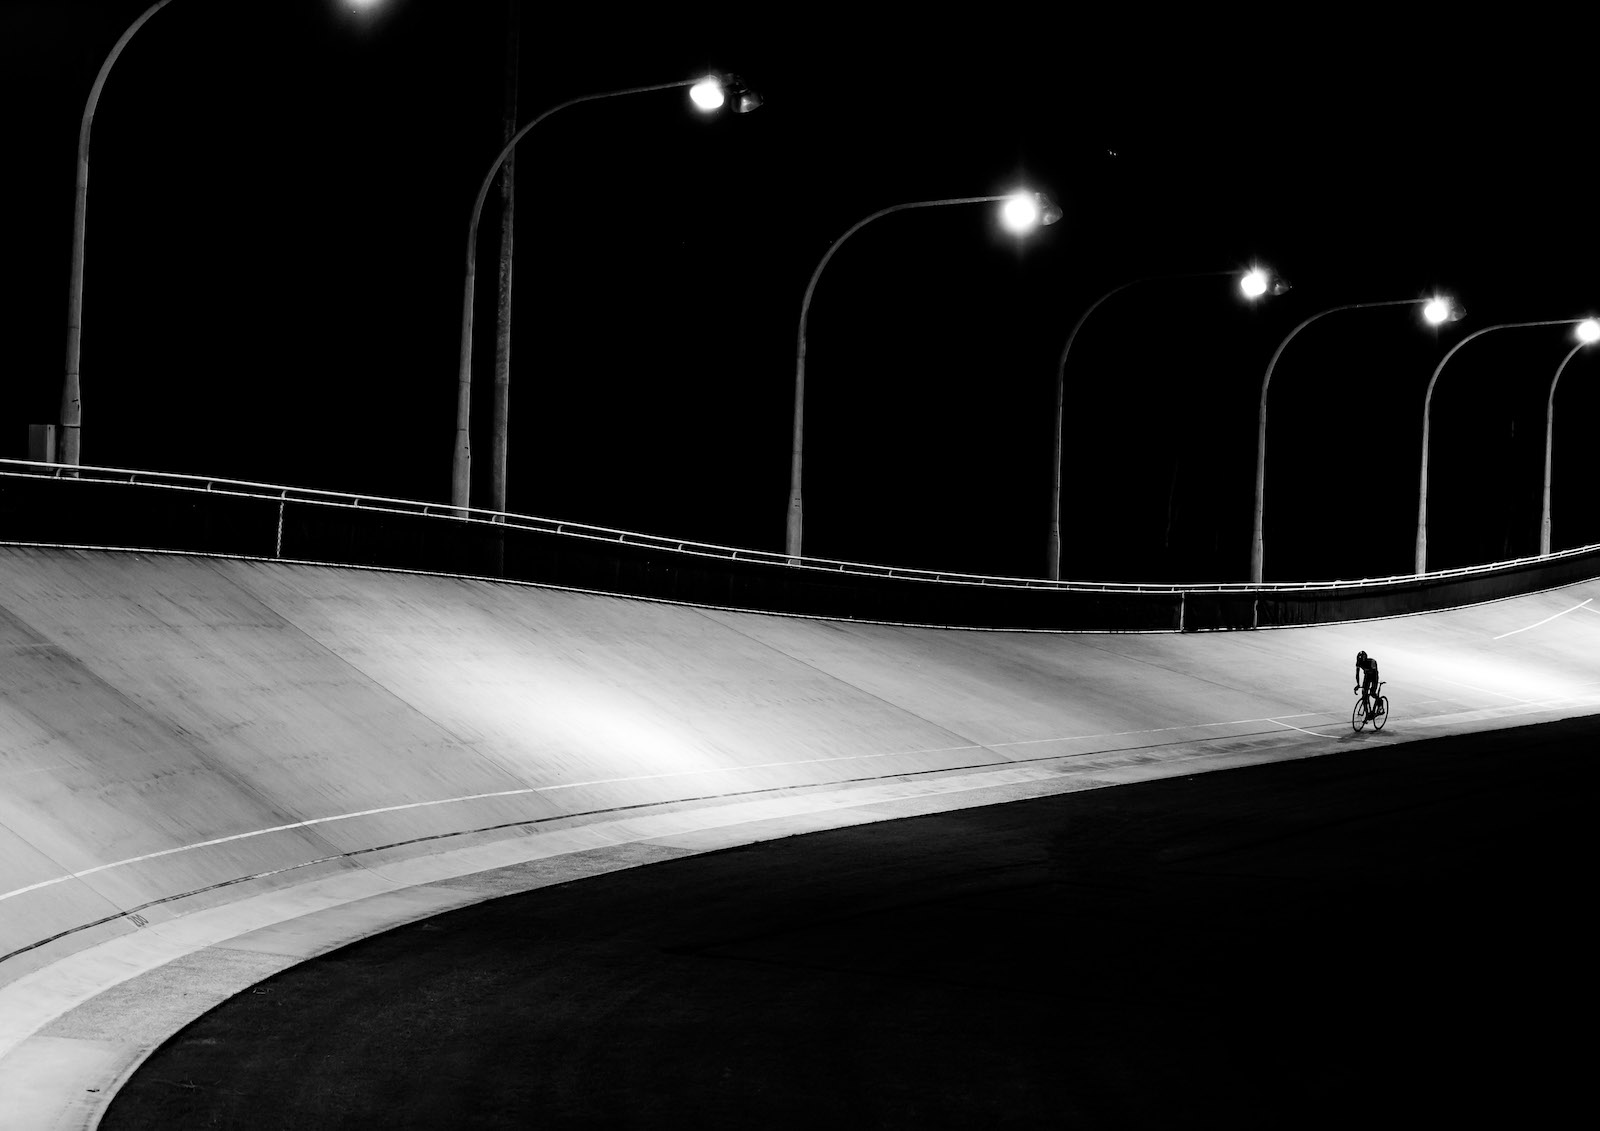 """Davor Jakoljevic, Australia. """"This image is part of collection of photographs I have taken as my final project for my Photo Imaging course graduation at CATC Sydney Design School. I always loved monochrome and I wanted to create different cycling images to standard sport like photos, this was the final result."""" DSLR. @davorjakov"""